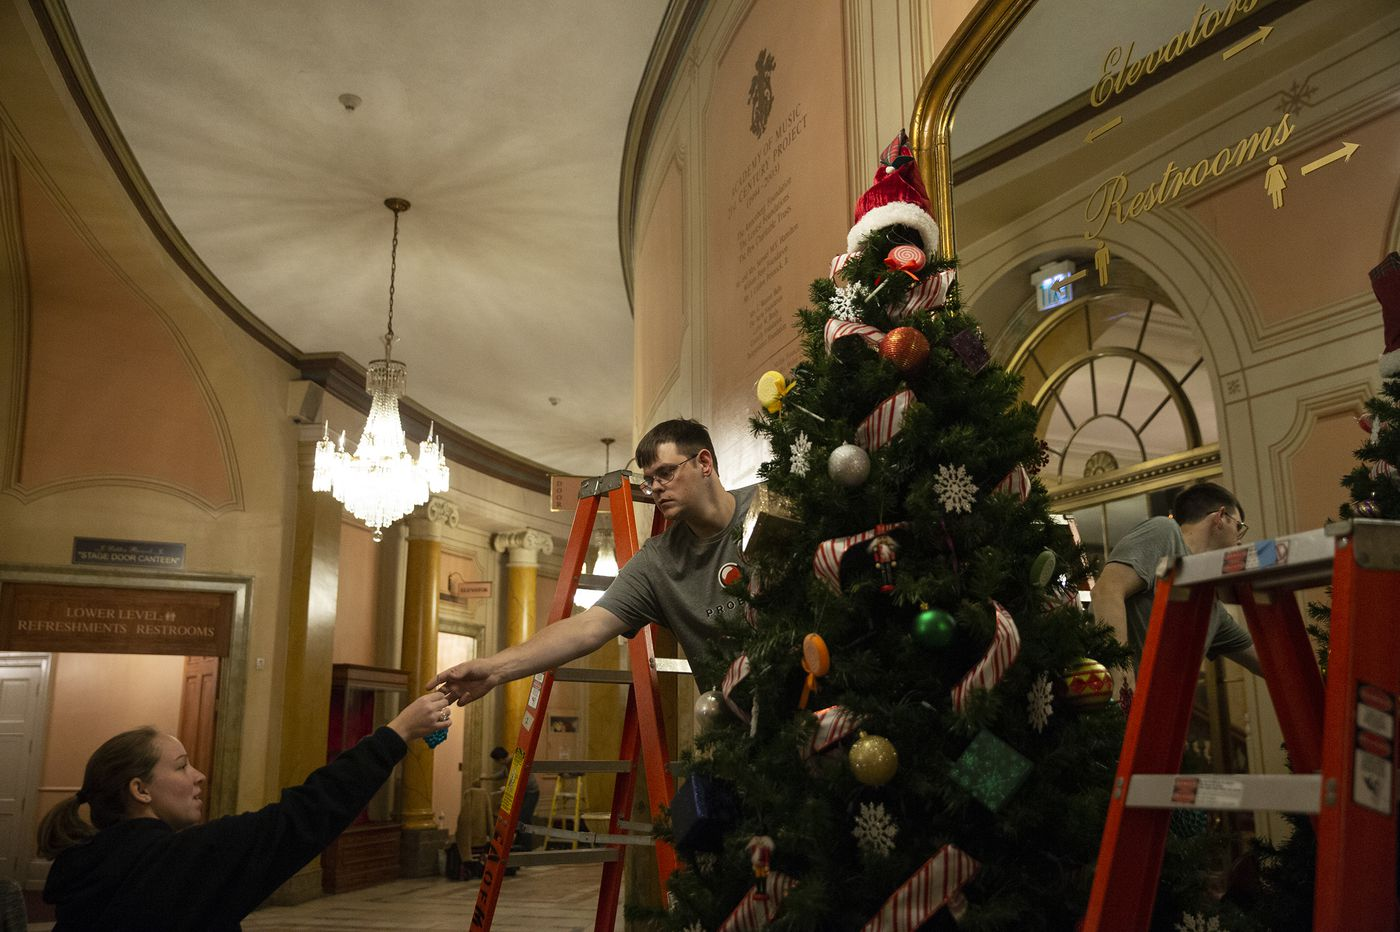 Christmas whiff: A custom 'Nutcracker' scent will infuse the Academy of Music lobby